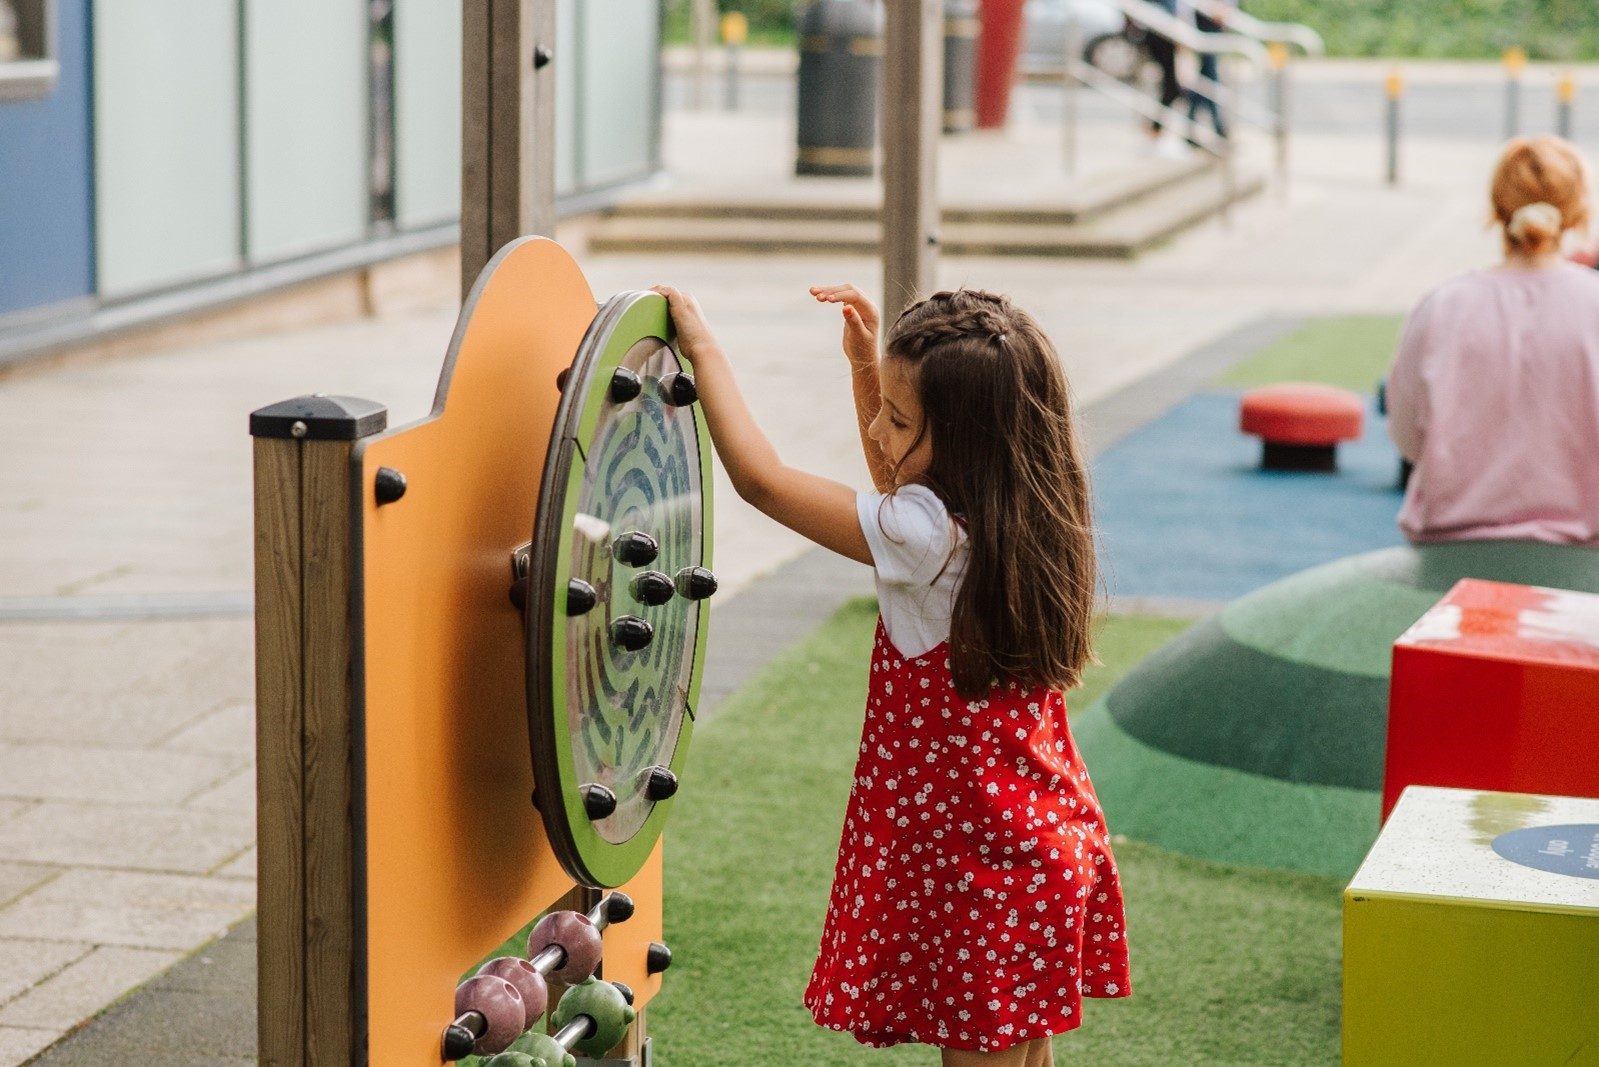 Child playing in a playground